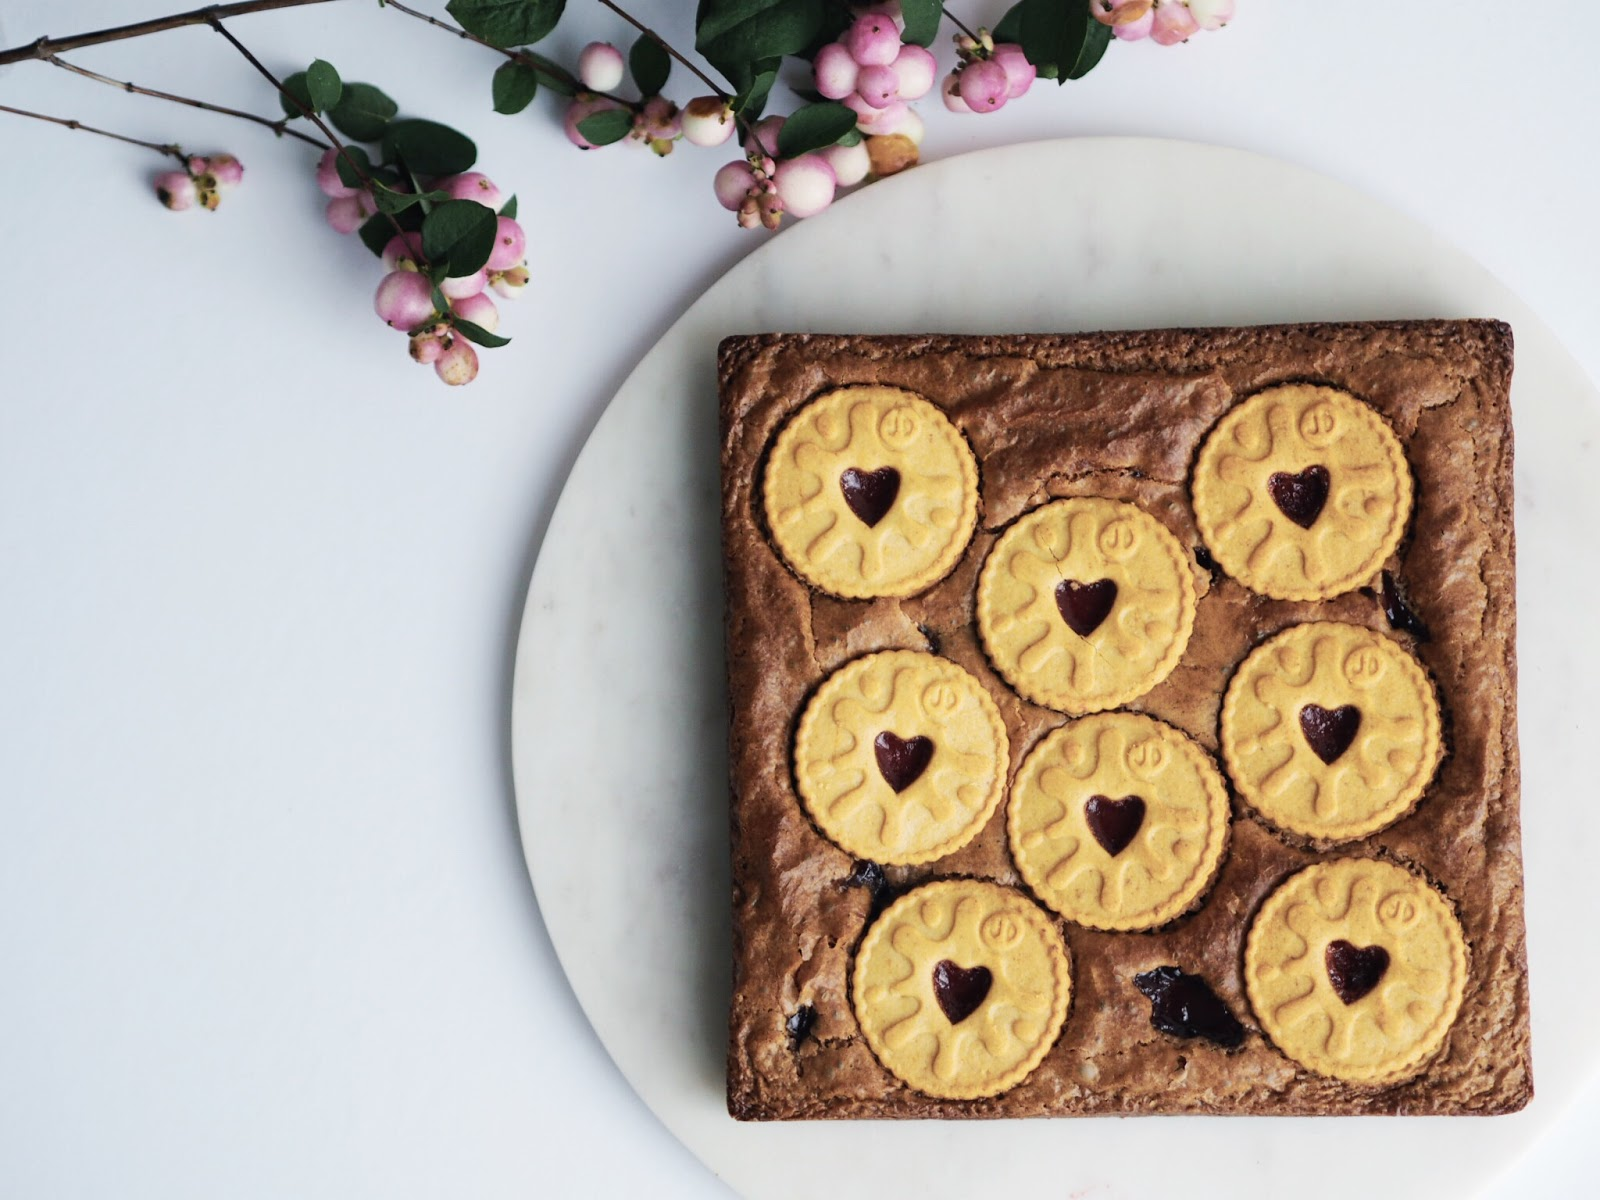 Recipe | Jammie Dodger Brownies Cover Image Marble Tray Snow Berries